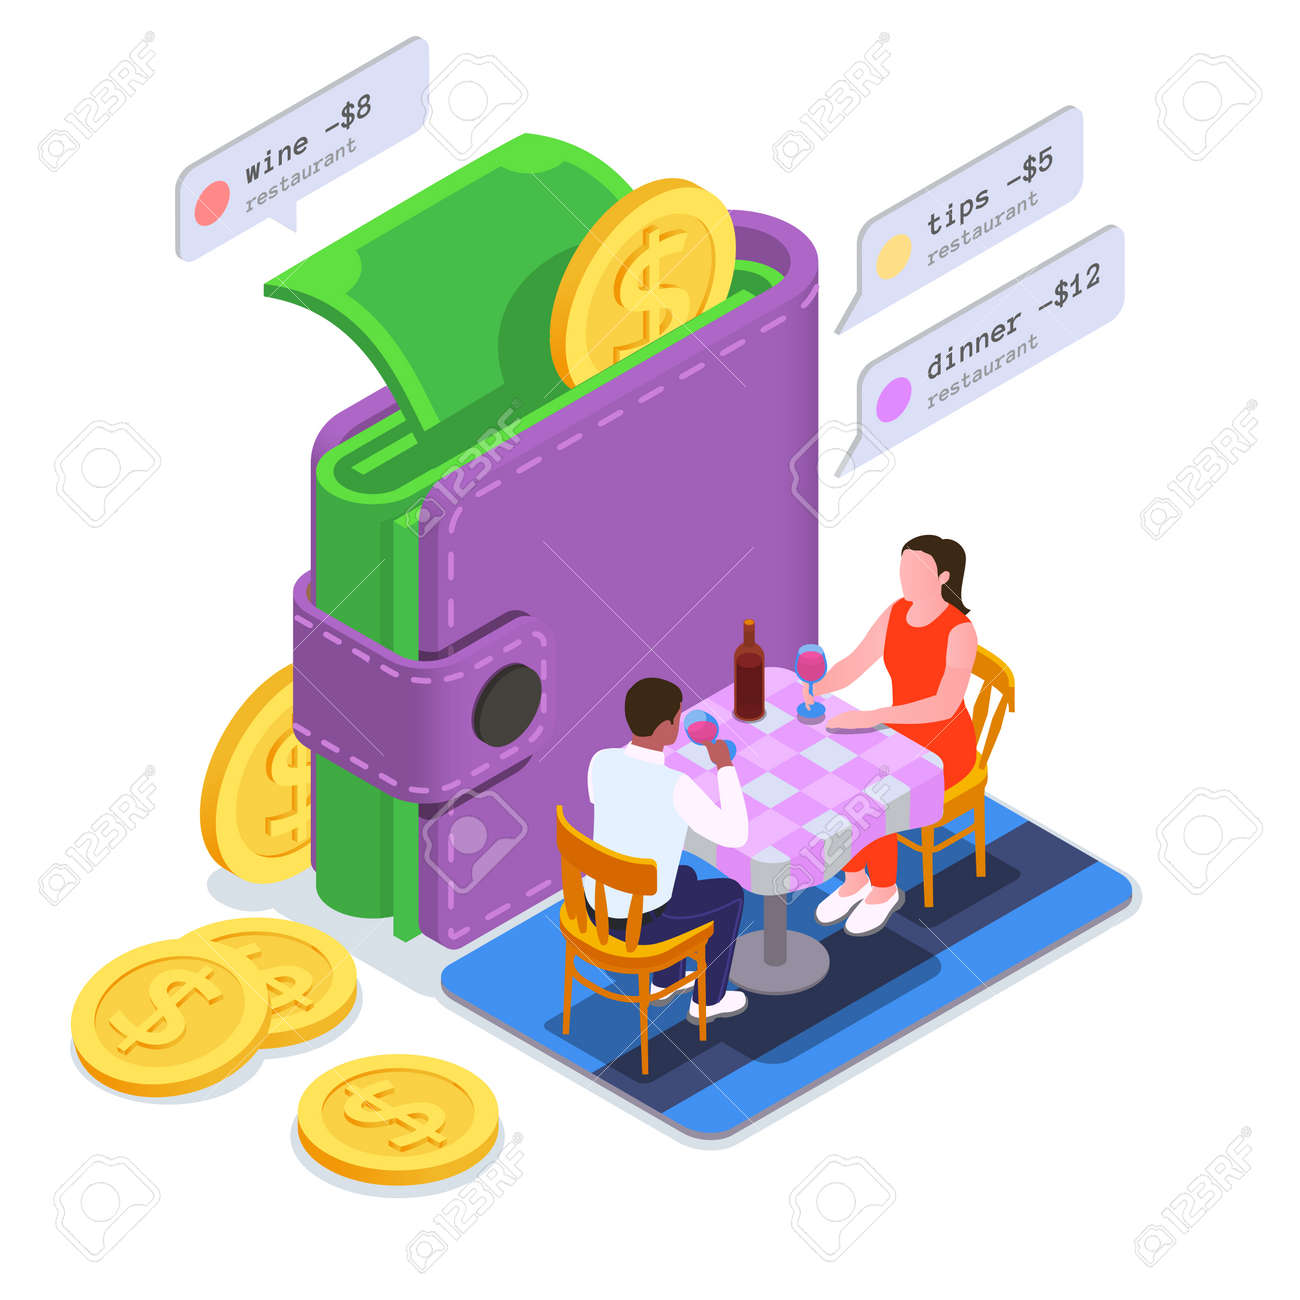 Financial Education Literacy Colored Isometric Composition - 171636219